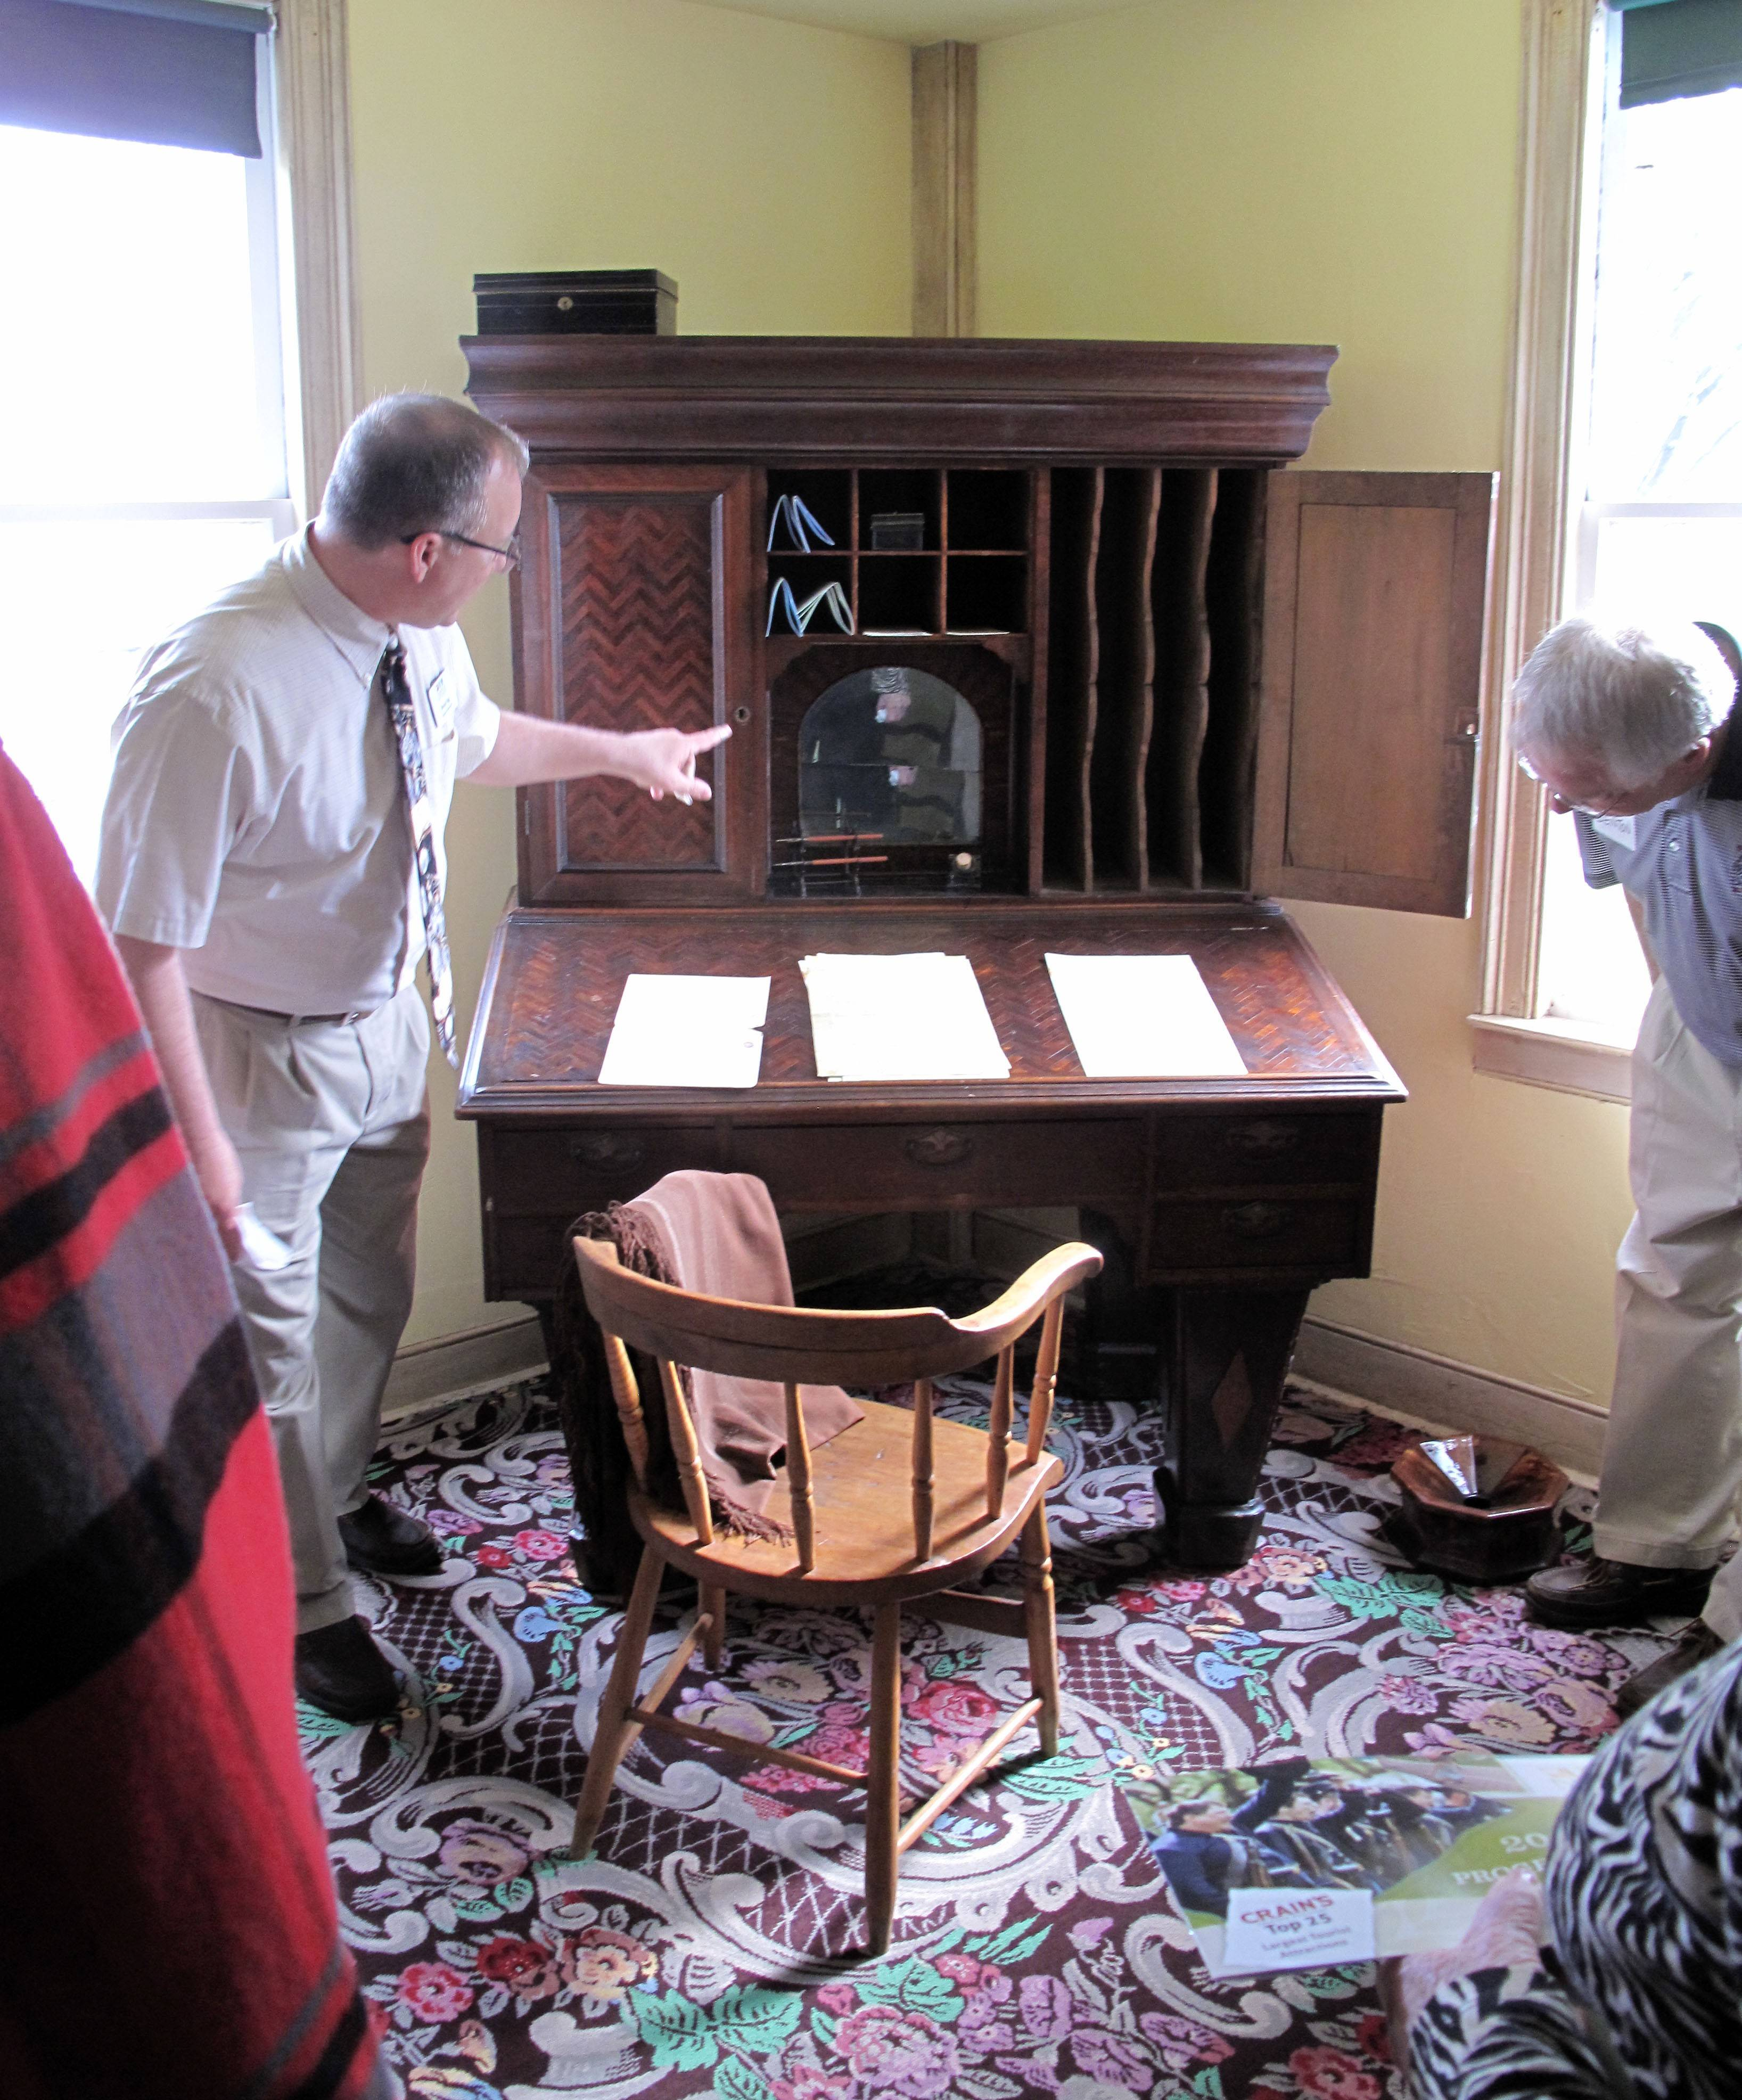 During a tour Thursday of the newly rededicated Hobson Law Office at Naper Settlement, Curator of Research Bryan Ogg shows how lawyers in the mid-1800s used compartments in their desks to file away important documents.